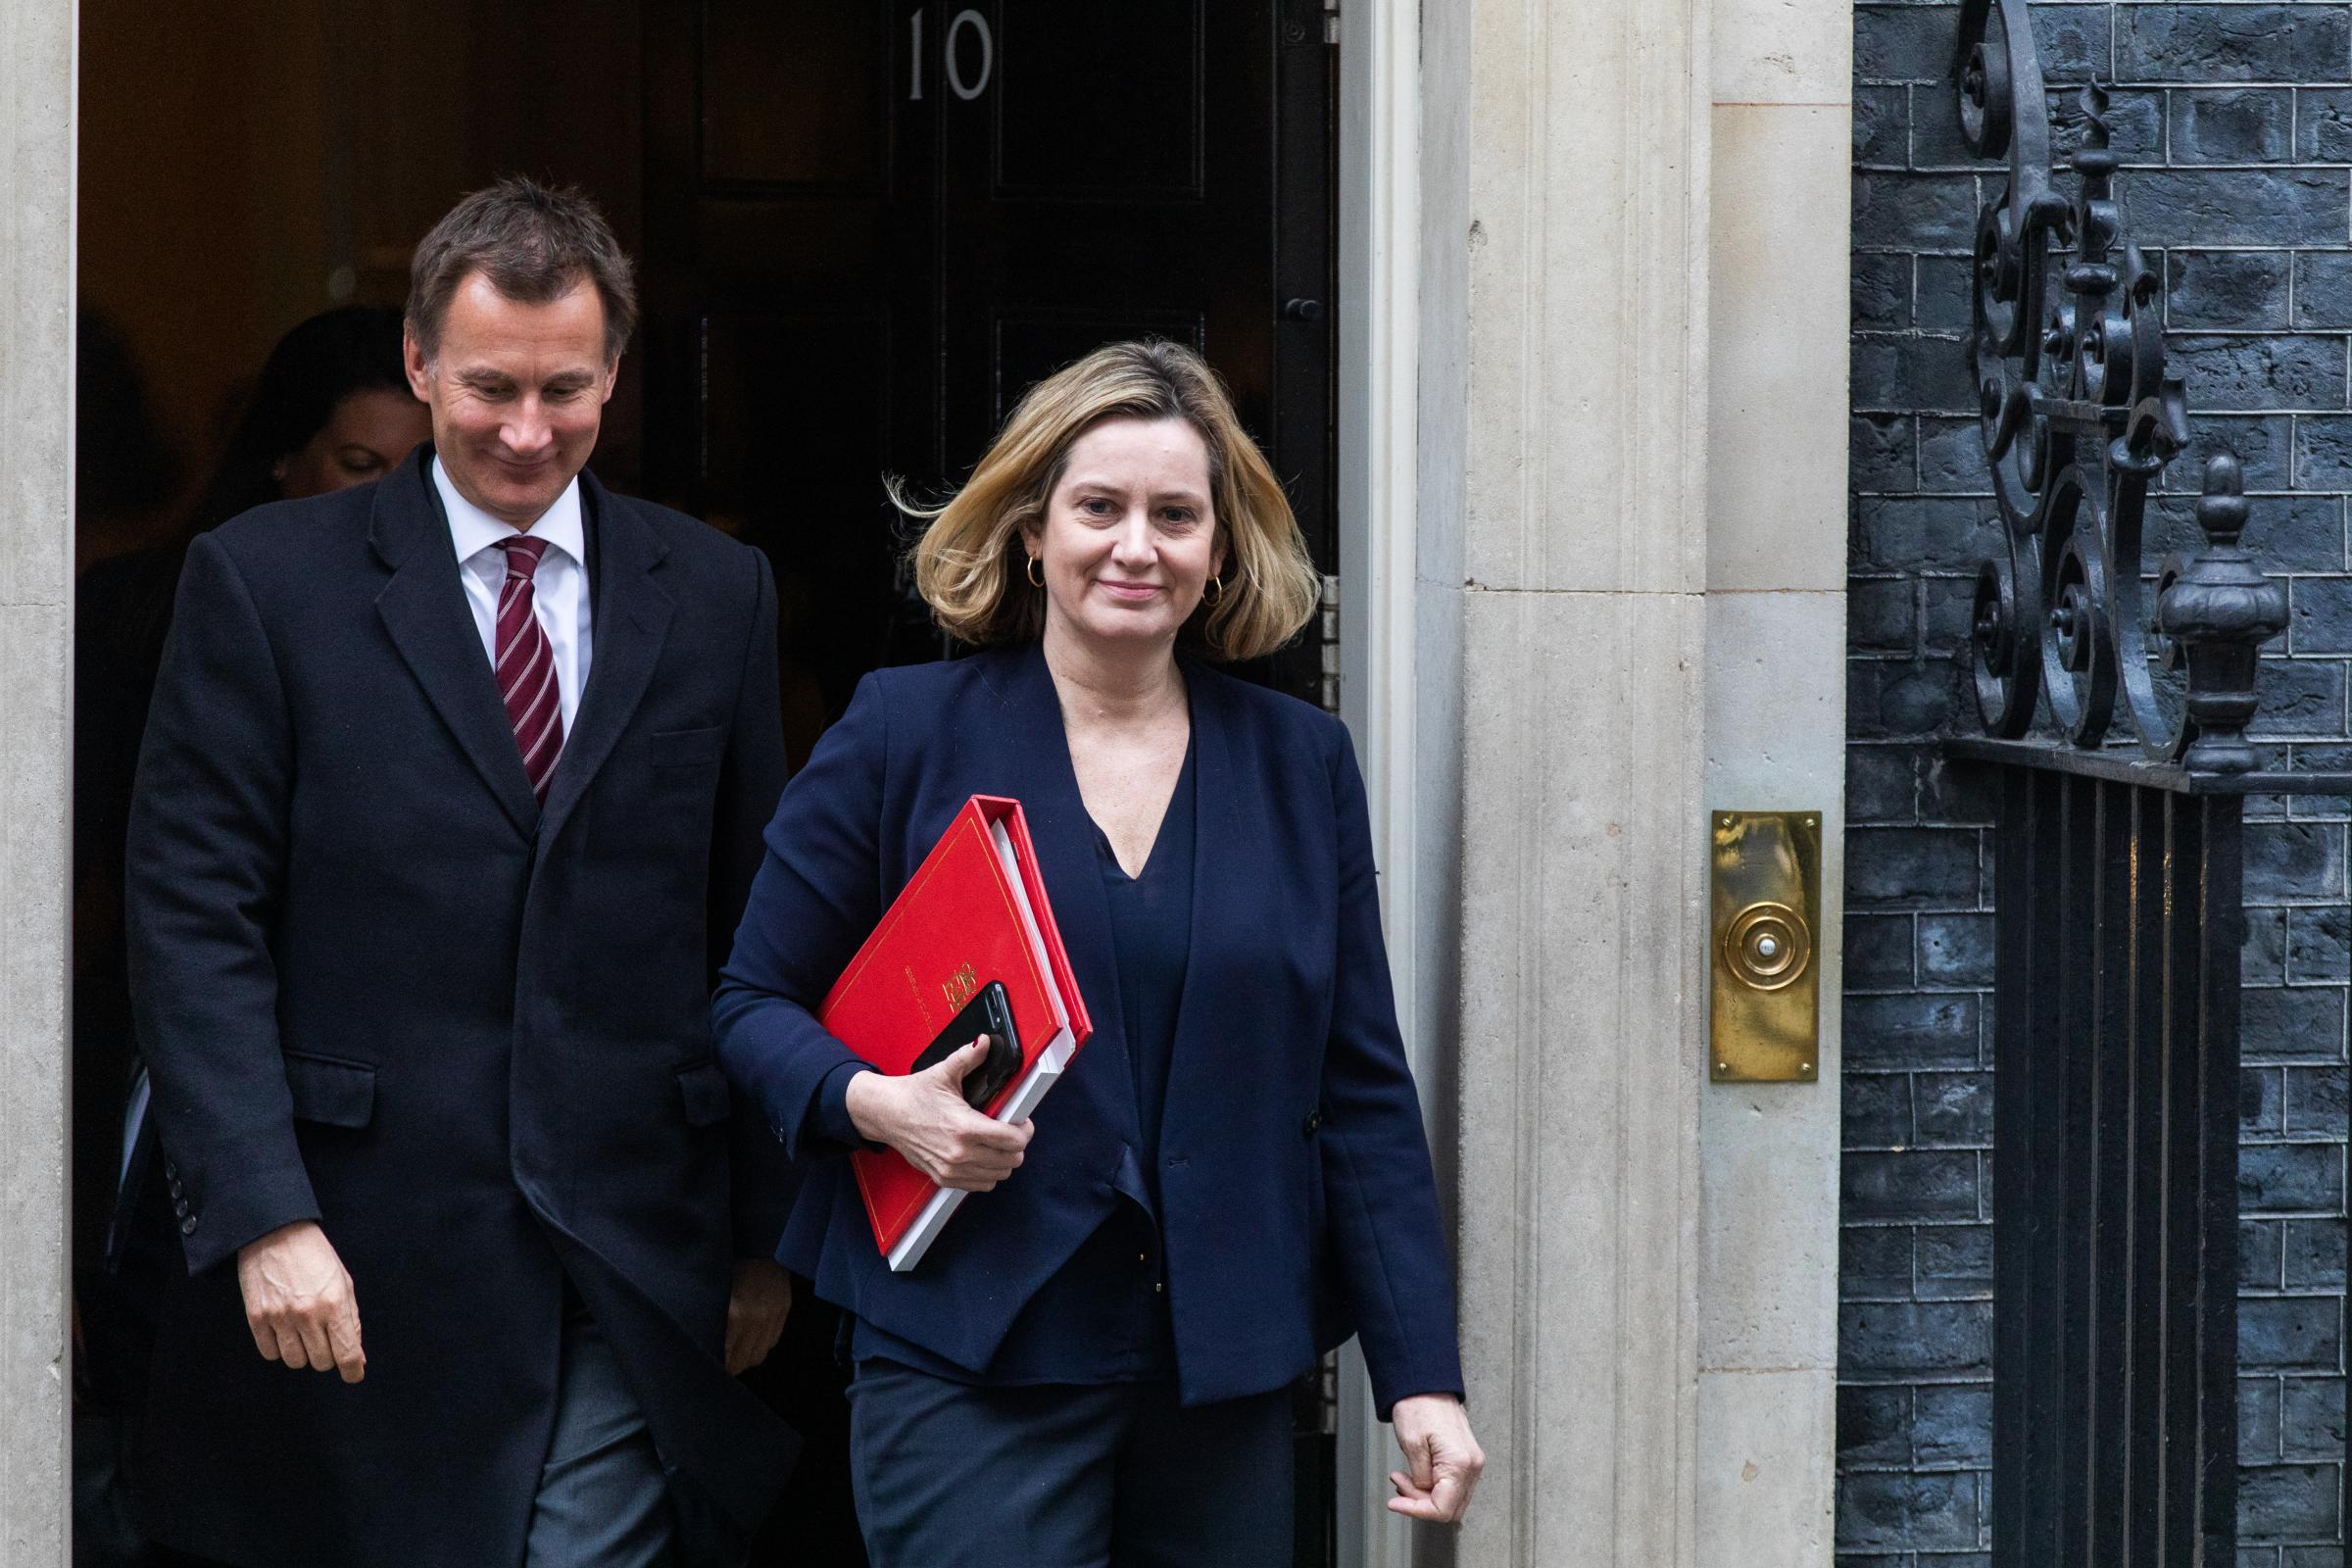 Amber Rudd has supported finding a cross-party consensus for several months.